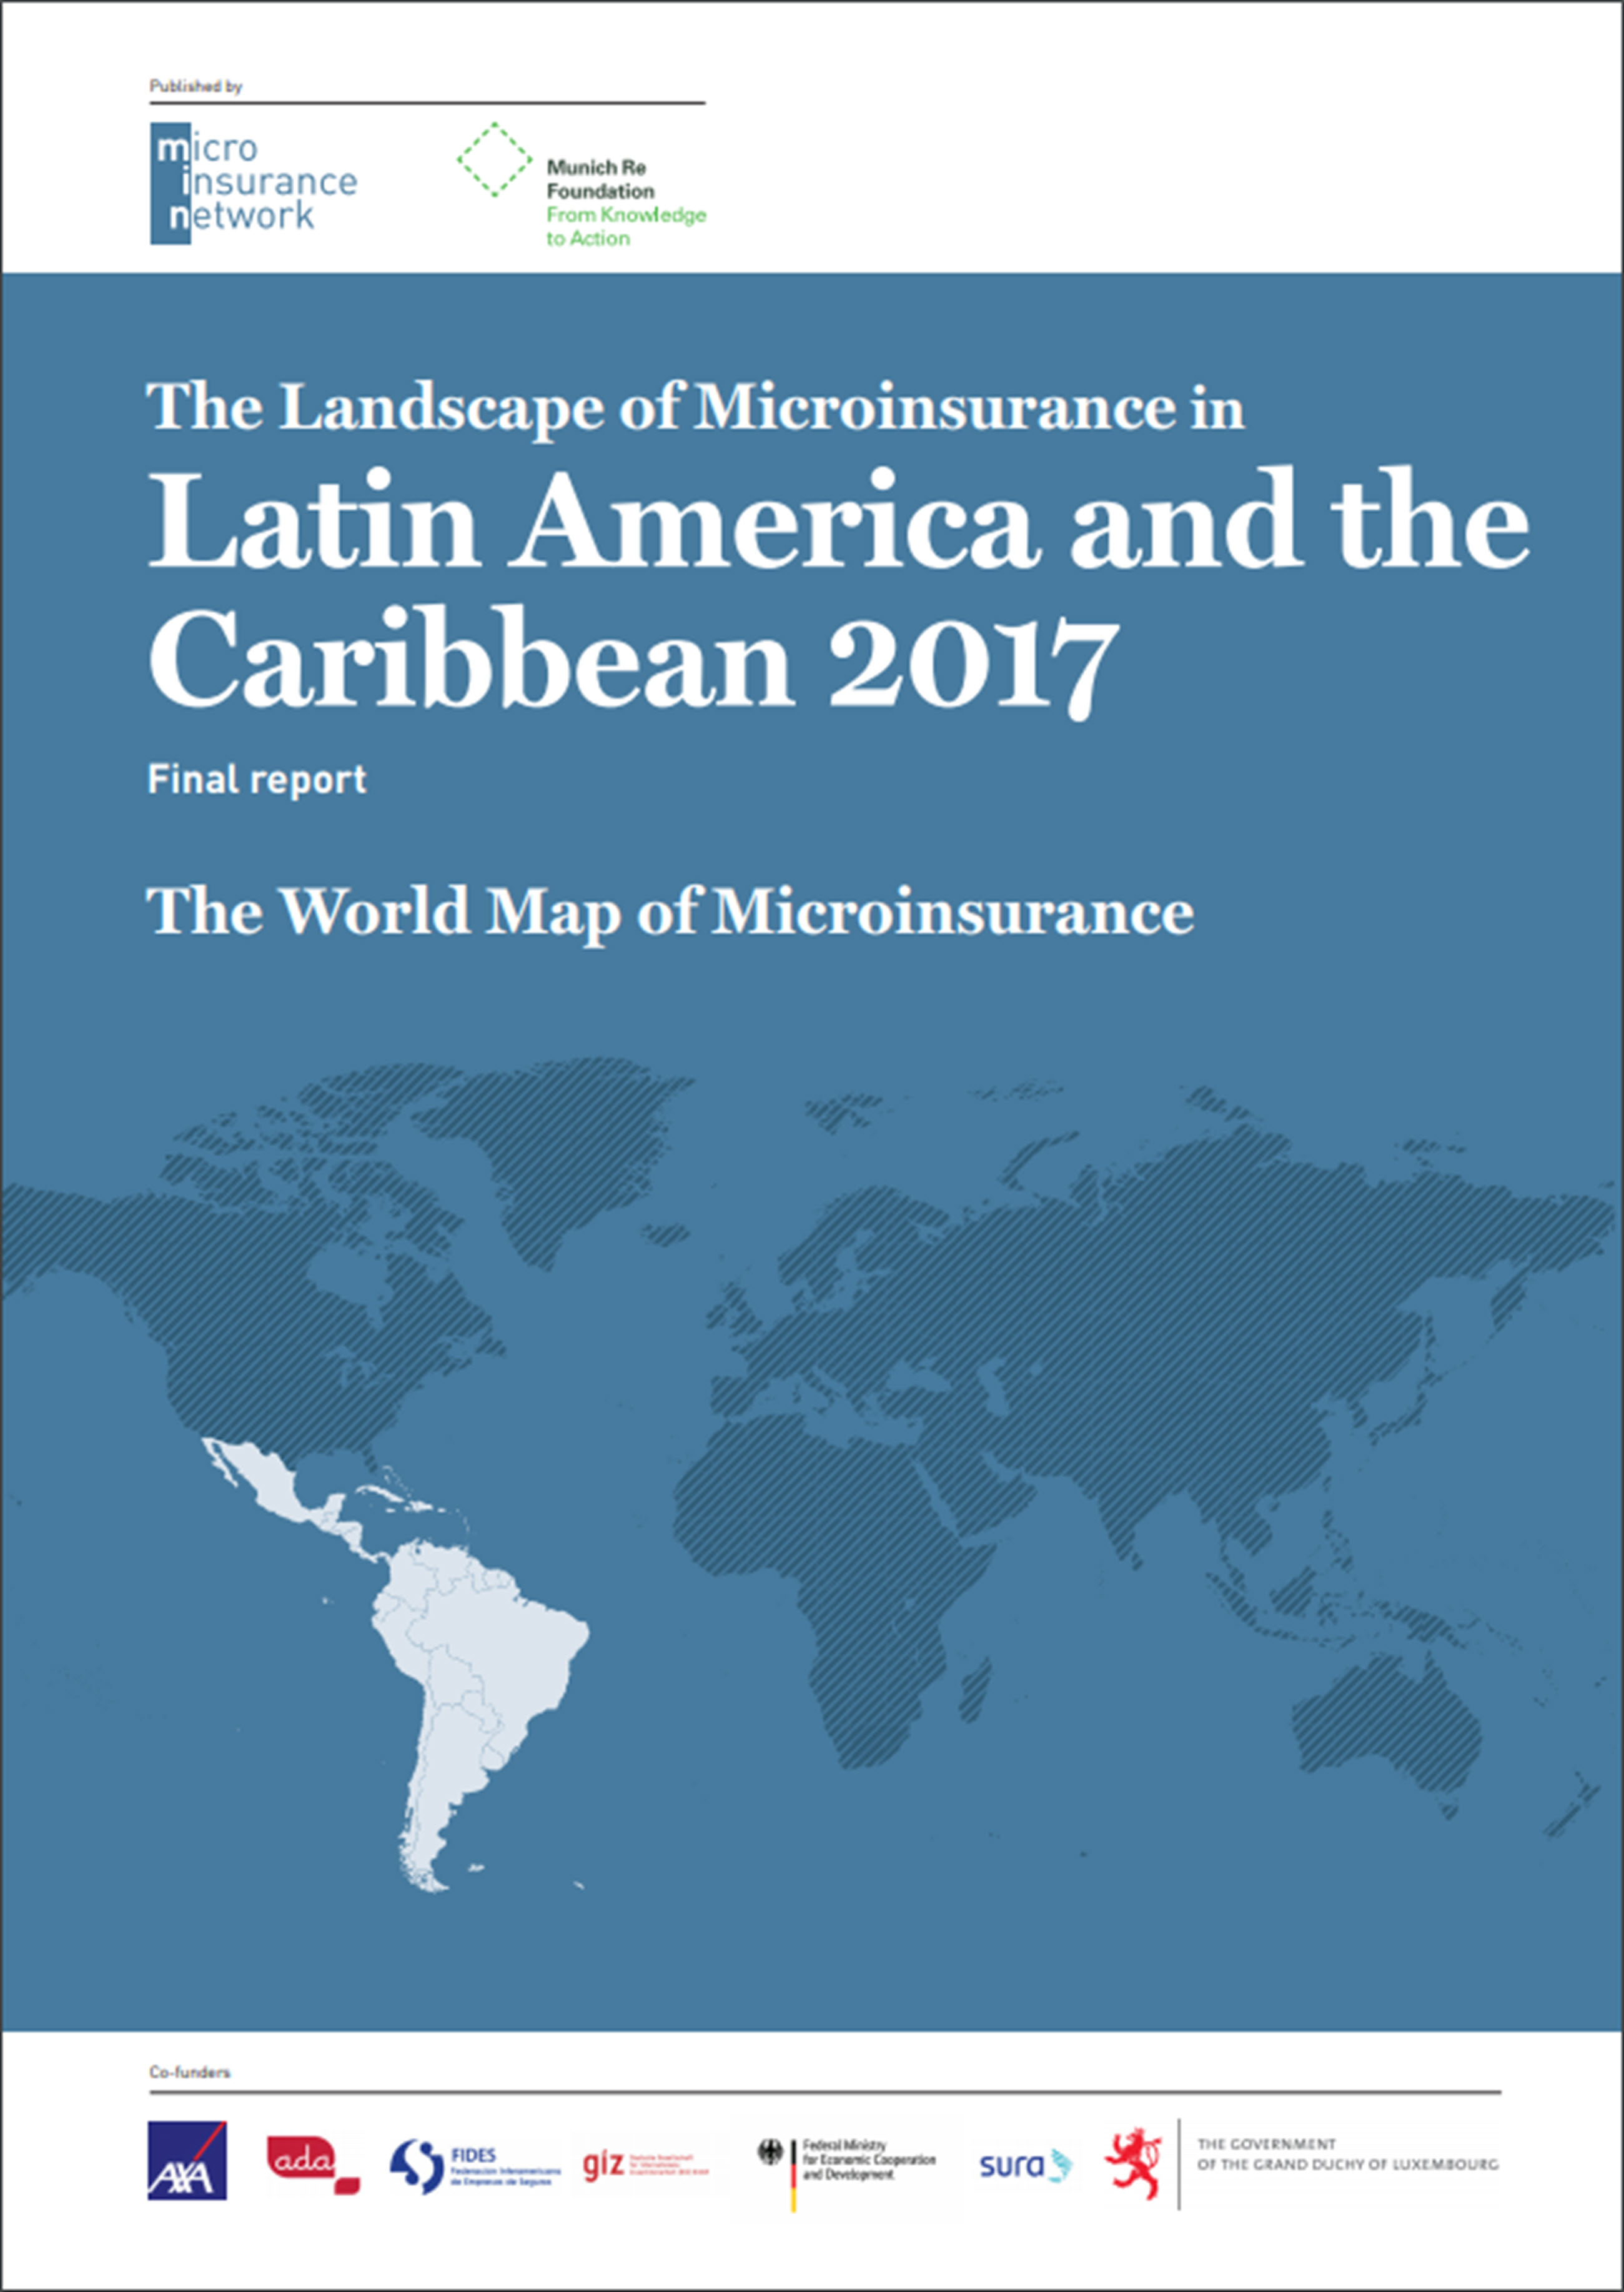 2017_Landscape study LA and the Caribbean_Final report